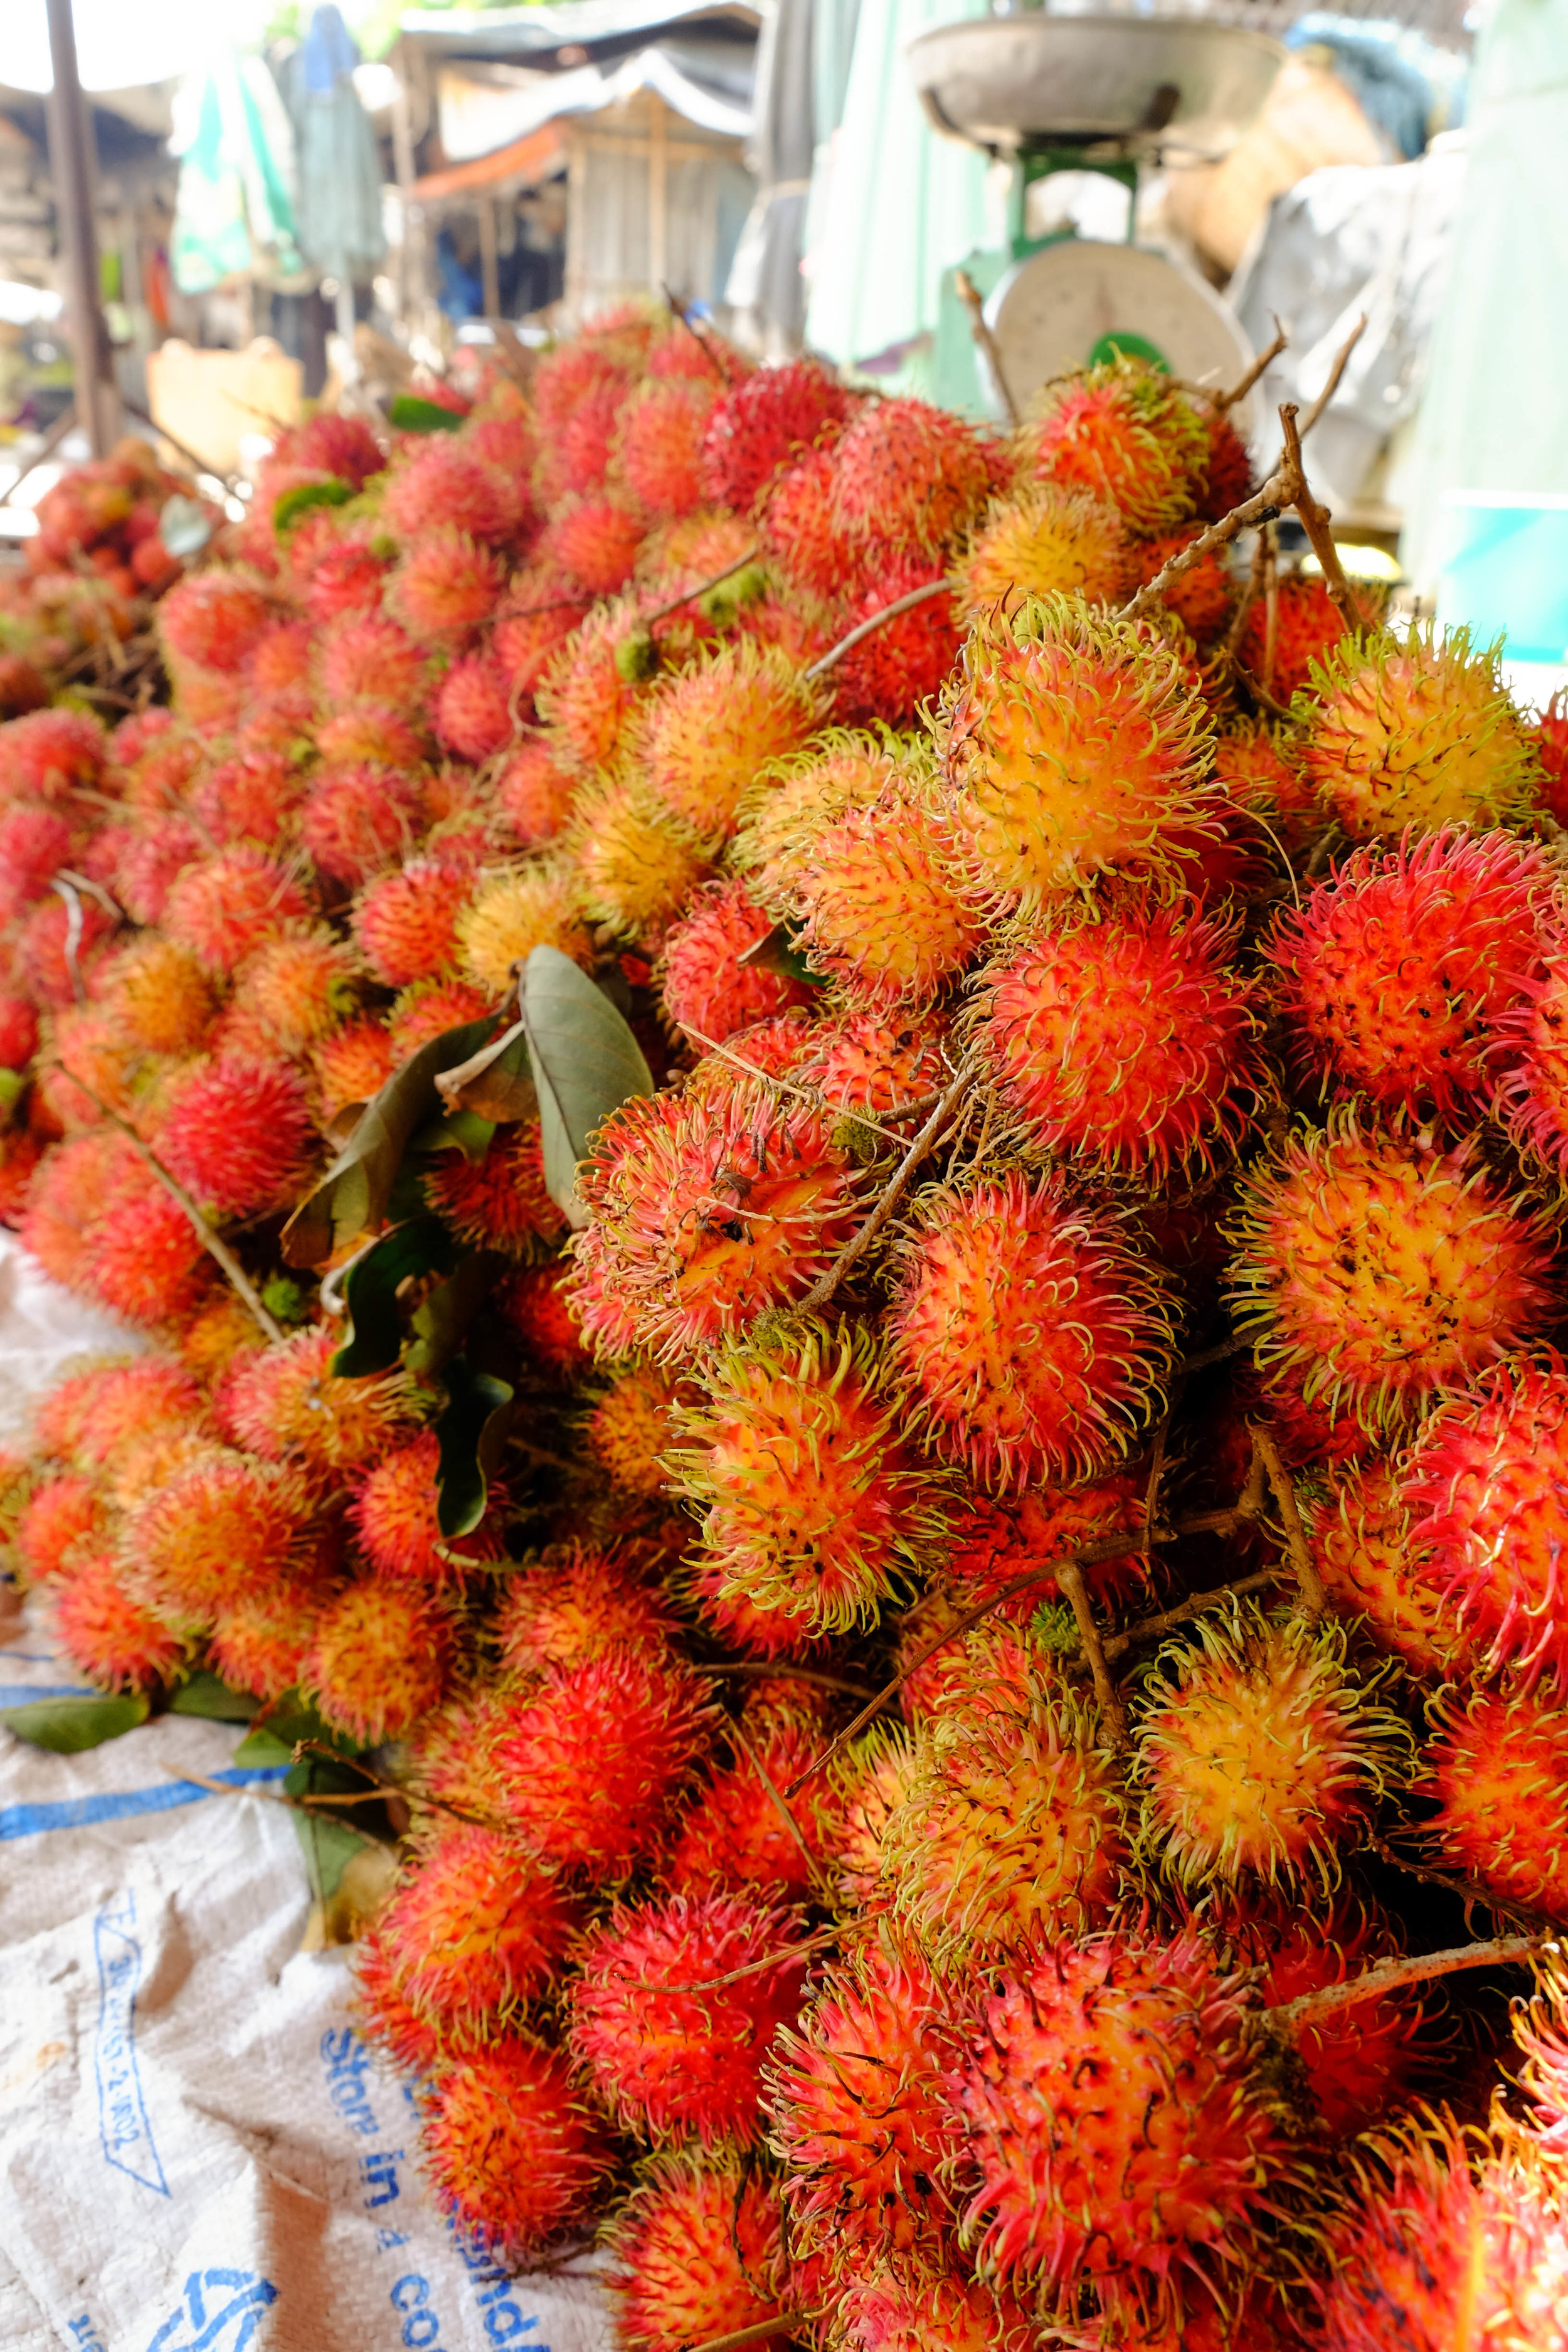 This vietnamese fruit is called rambutant, the outside is quite soft and when you tear it open, the fruit is has a light sweetness and sourness. Good for a post meal cleanse or refresher.